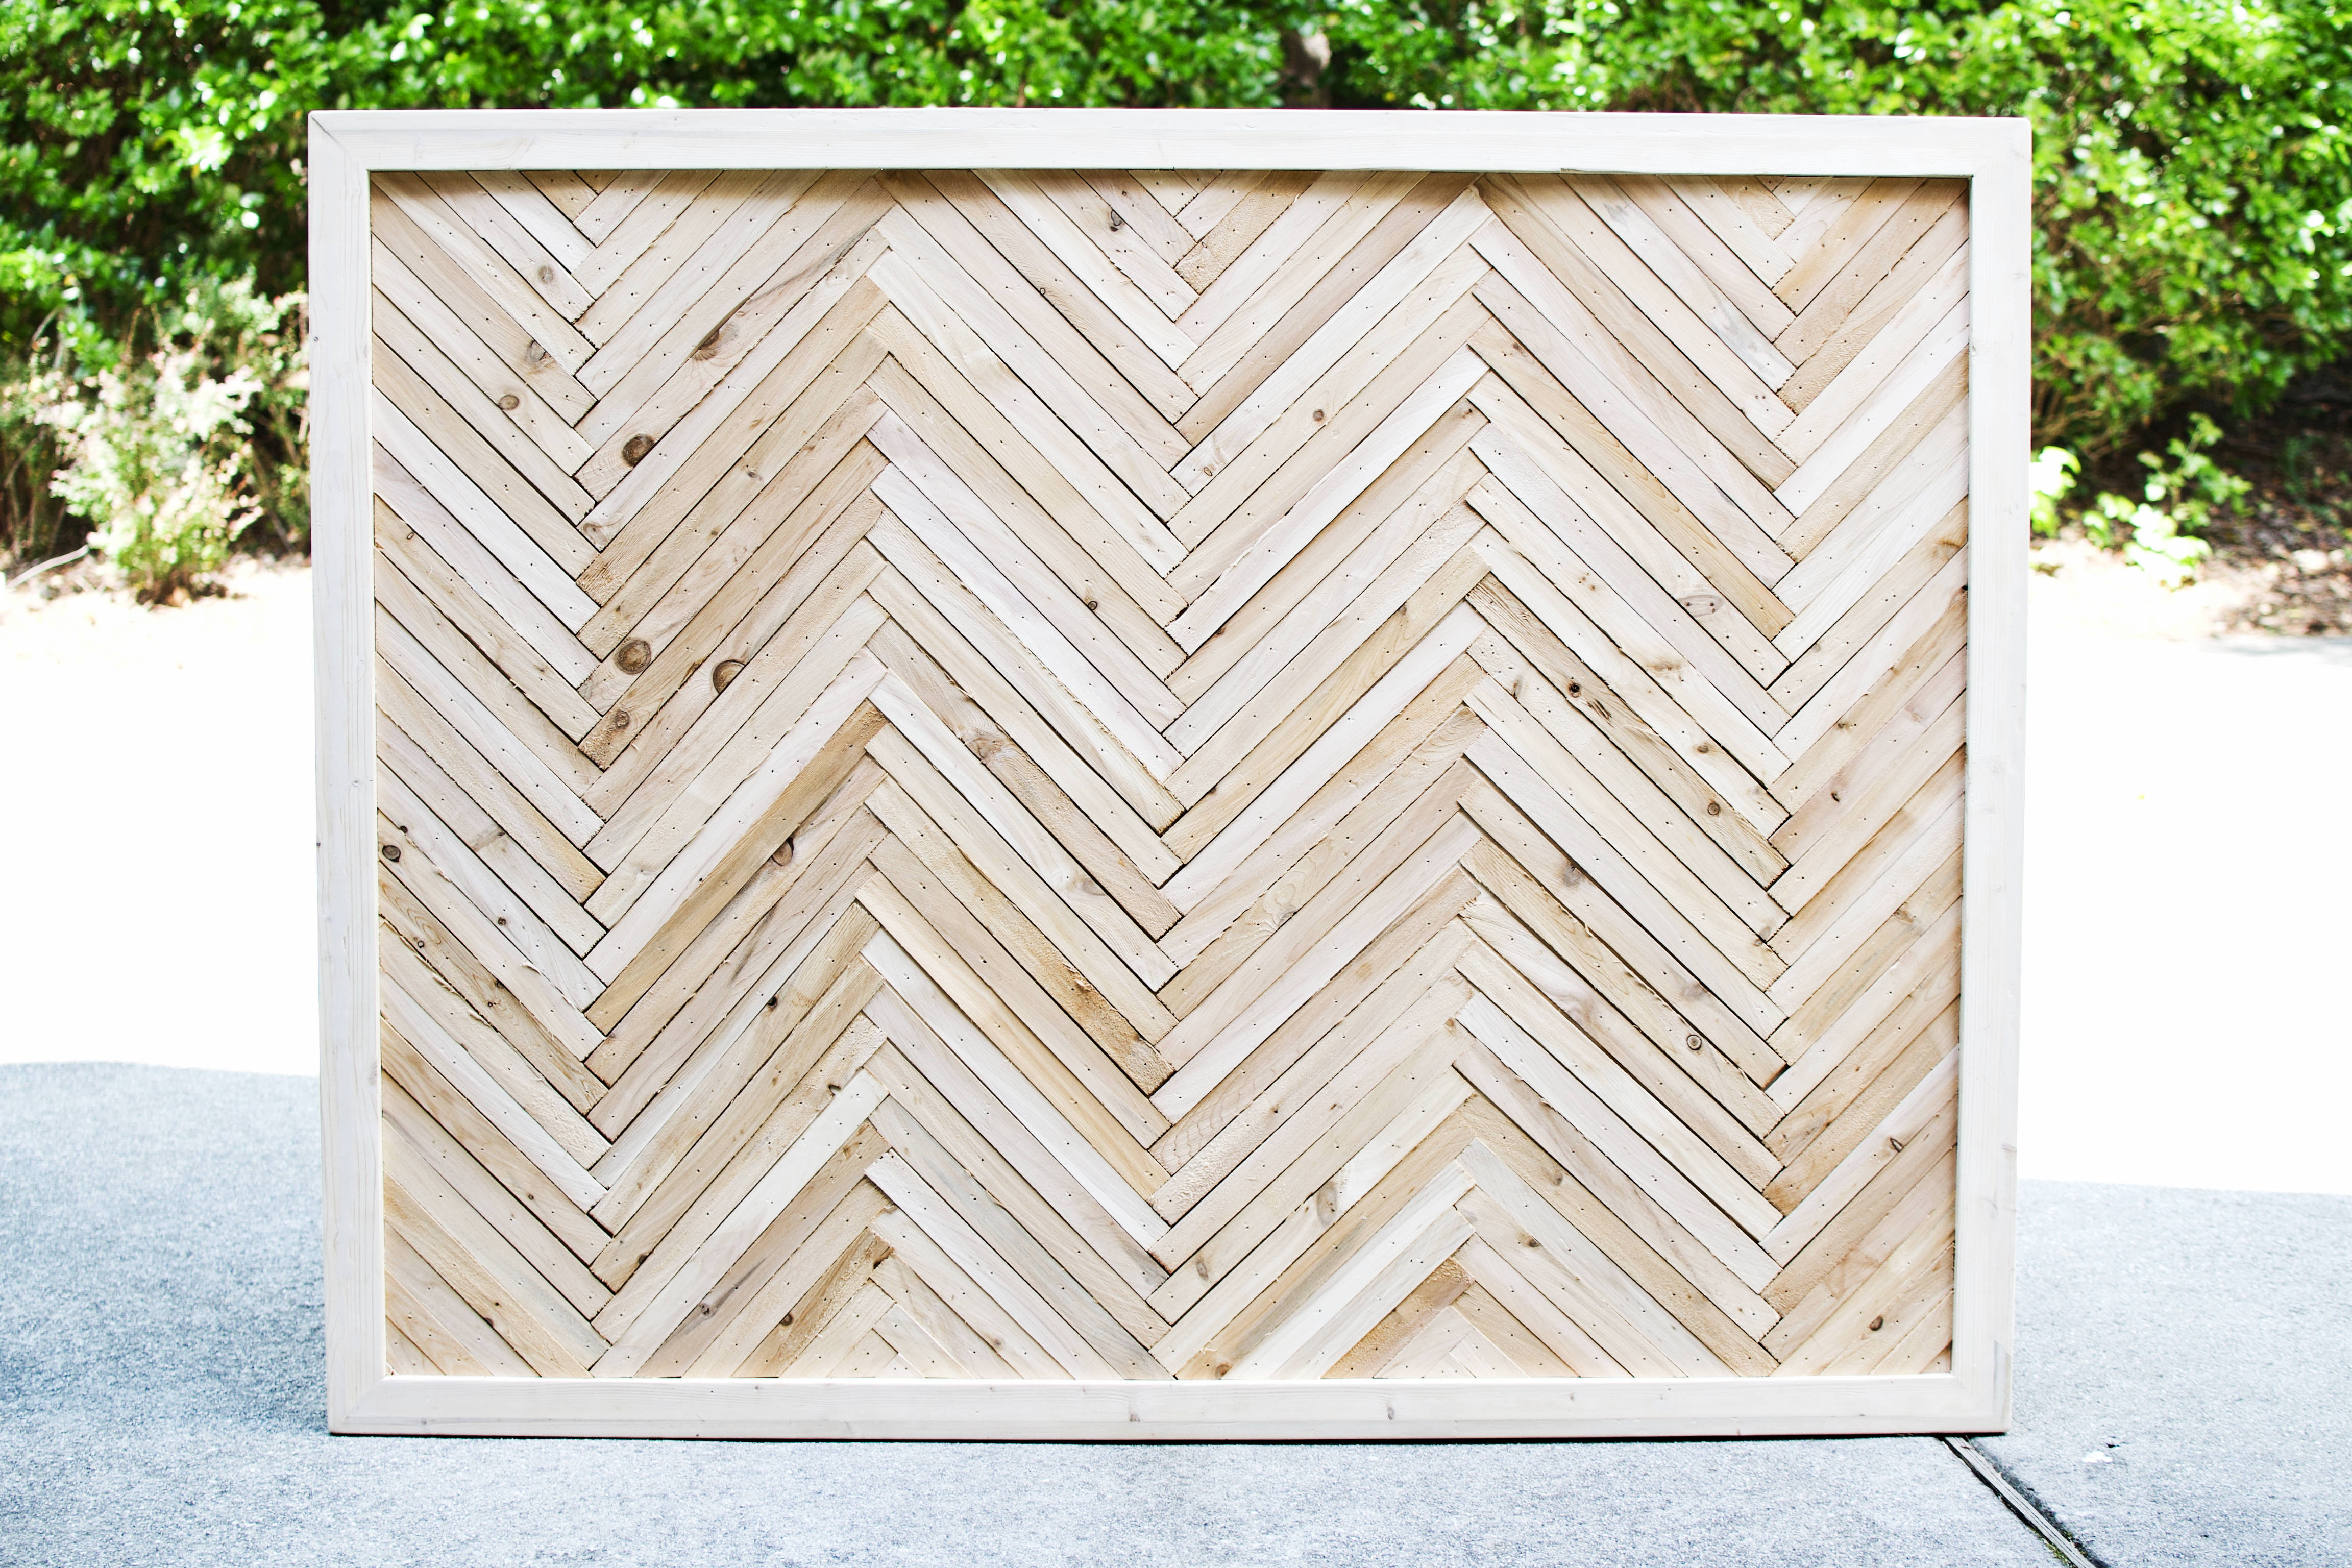 How to build a DIY herringbone headboard with wood shims